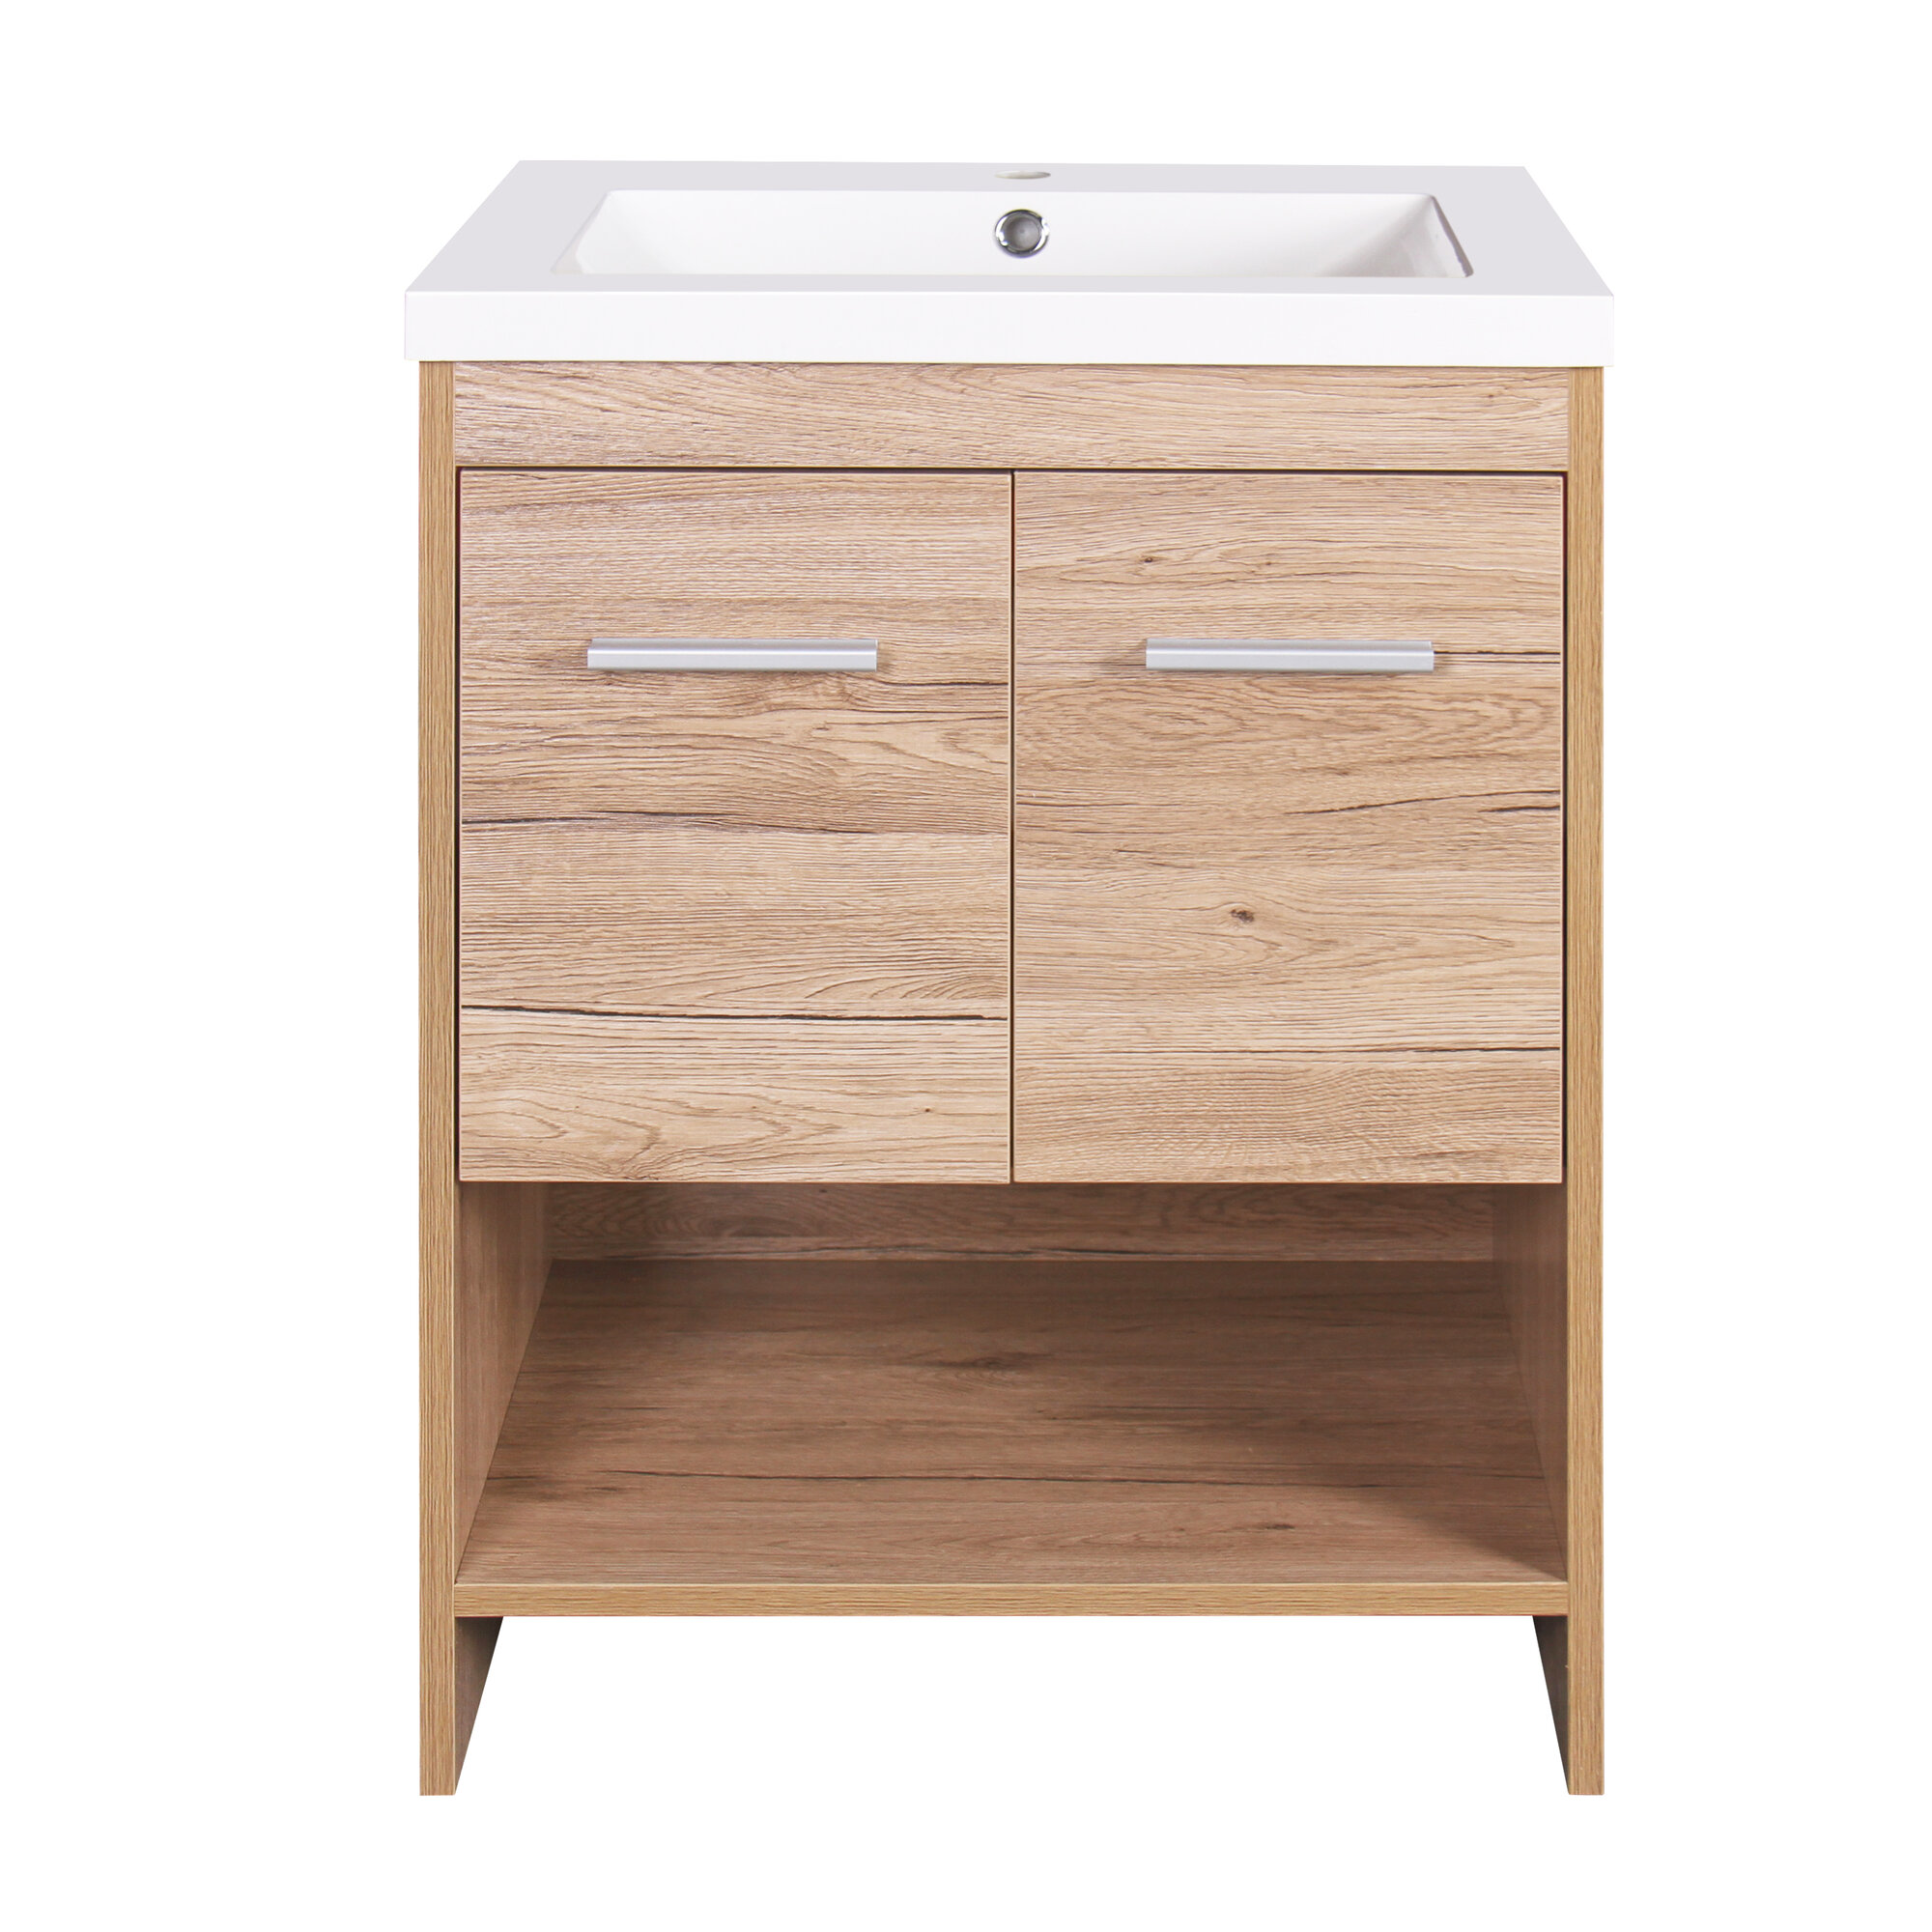 Details About Major Q Classic Contemporary 24 Single Bathroom Vanity Base Only